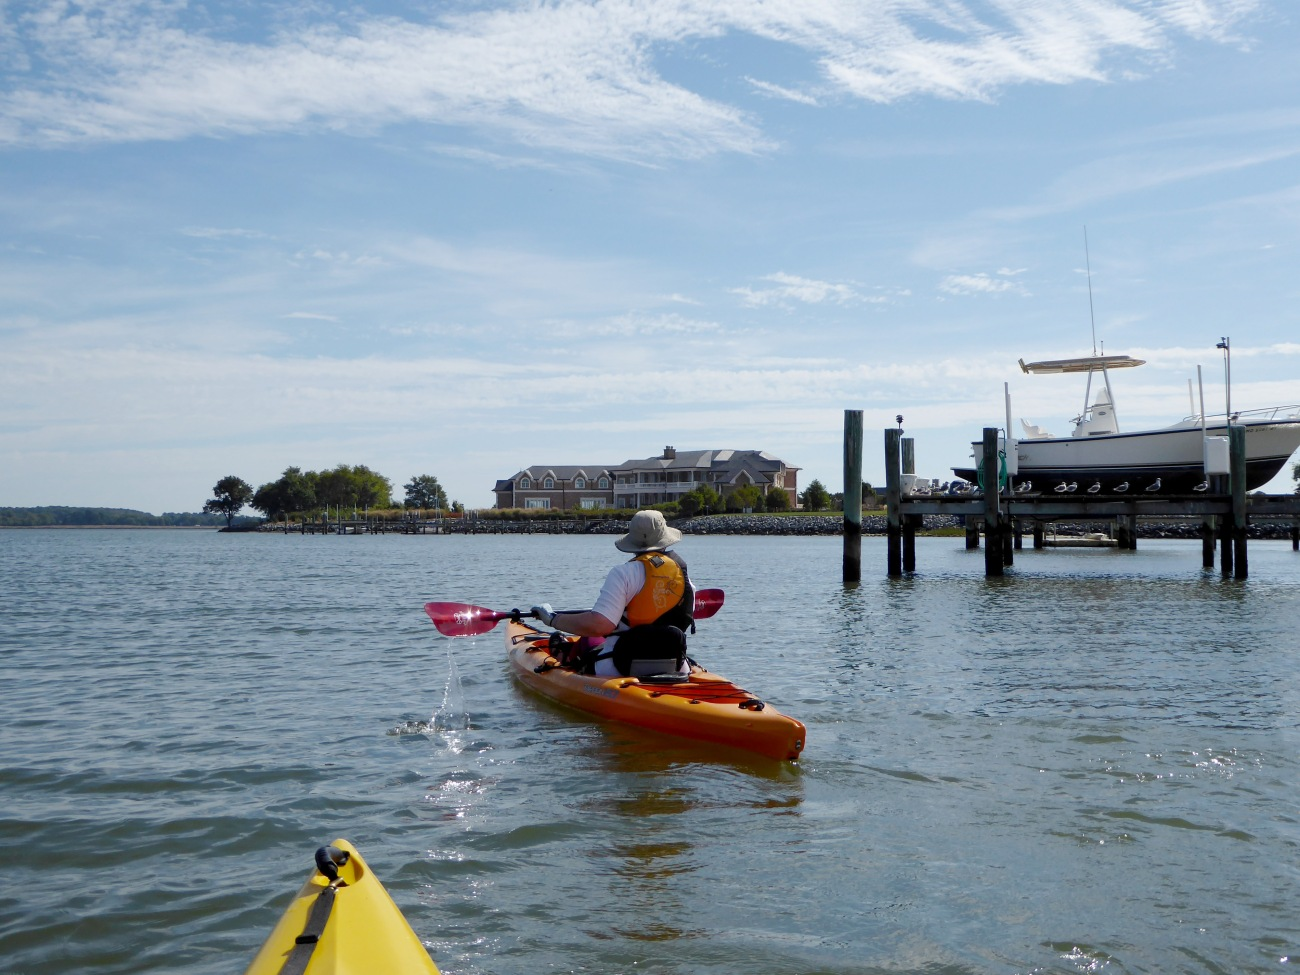 20171006_114711_Kayaking by some large homes